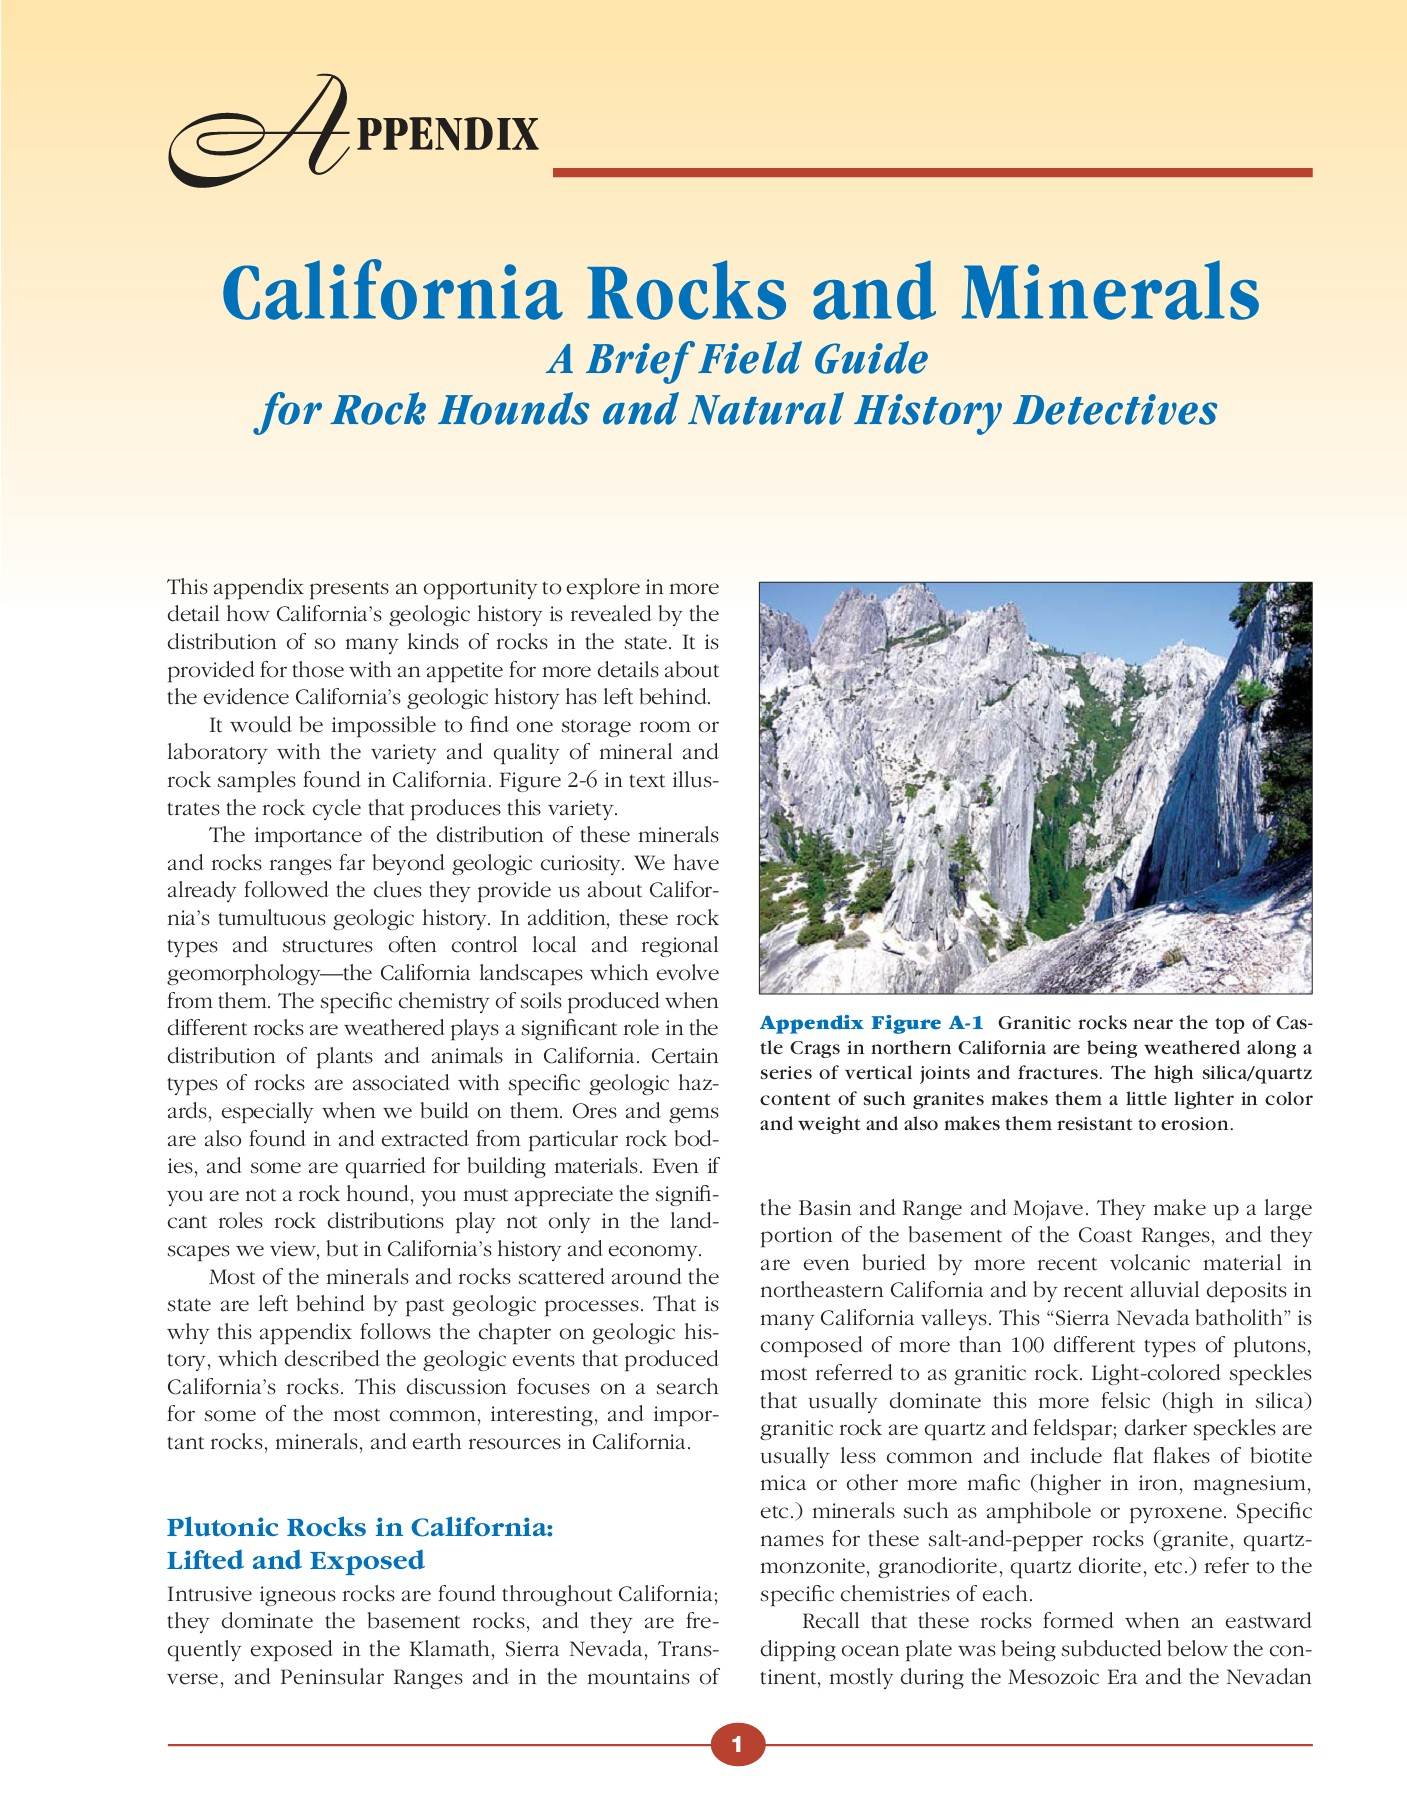 California Rocks and Minerals - California Geography